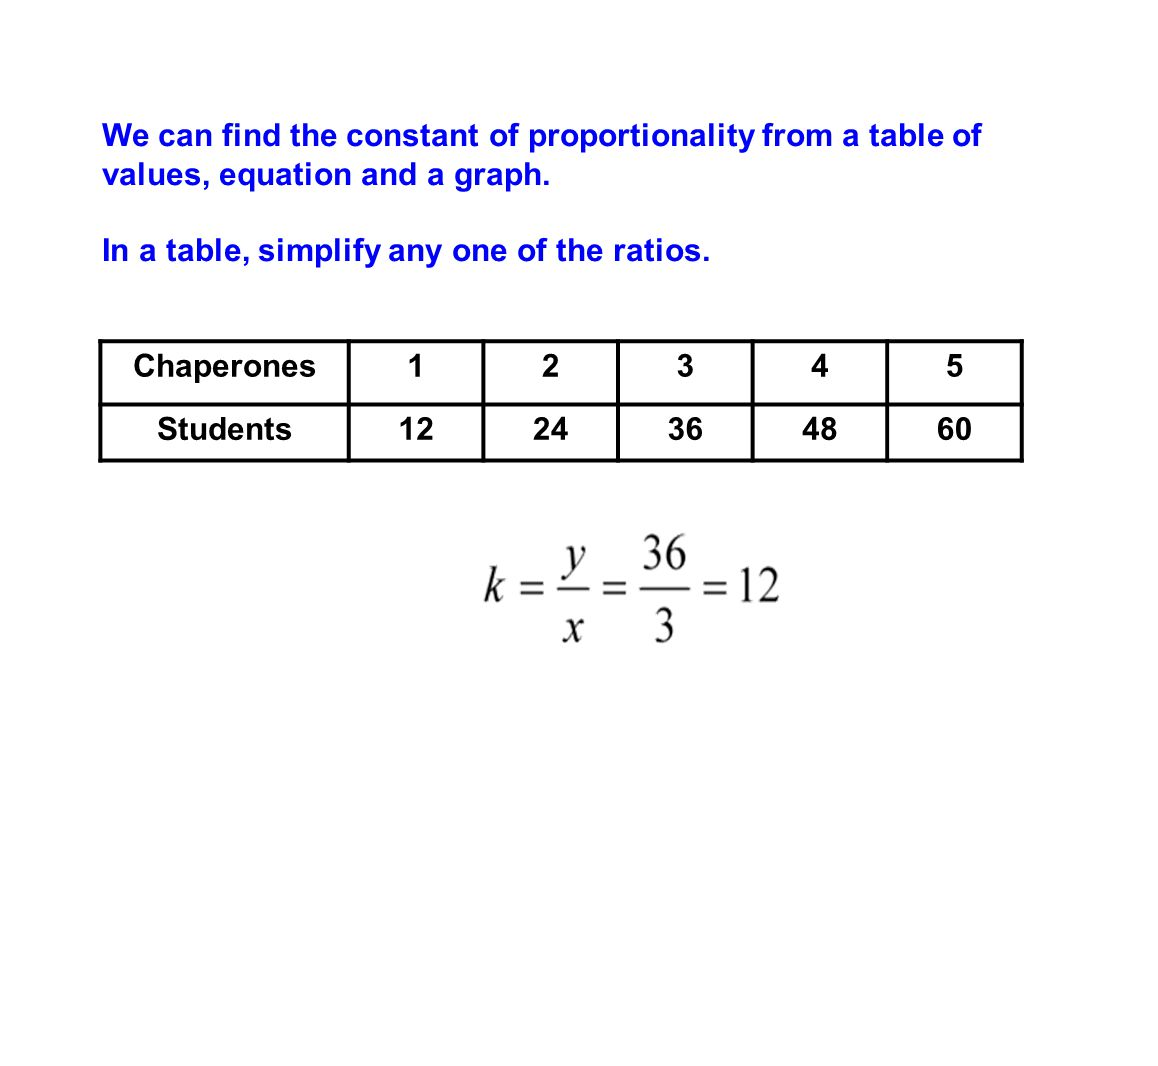 We can find the constant of proportionality from a table of values, equation and a graph.